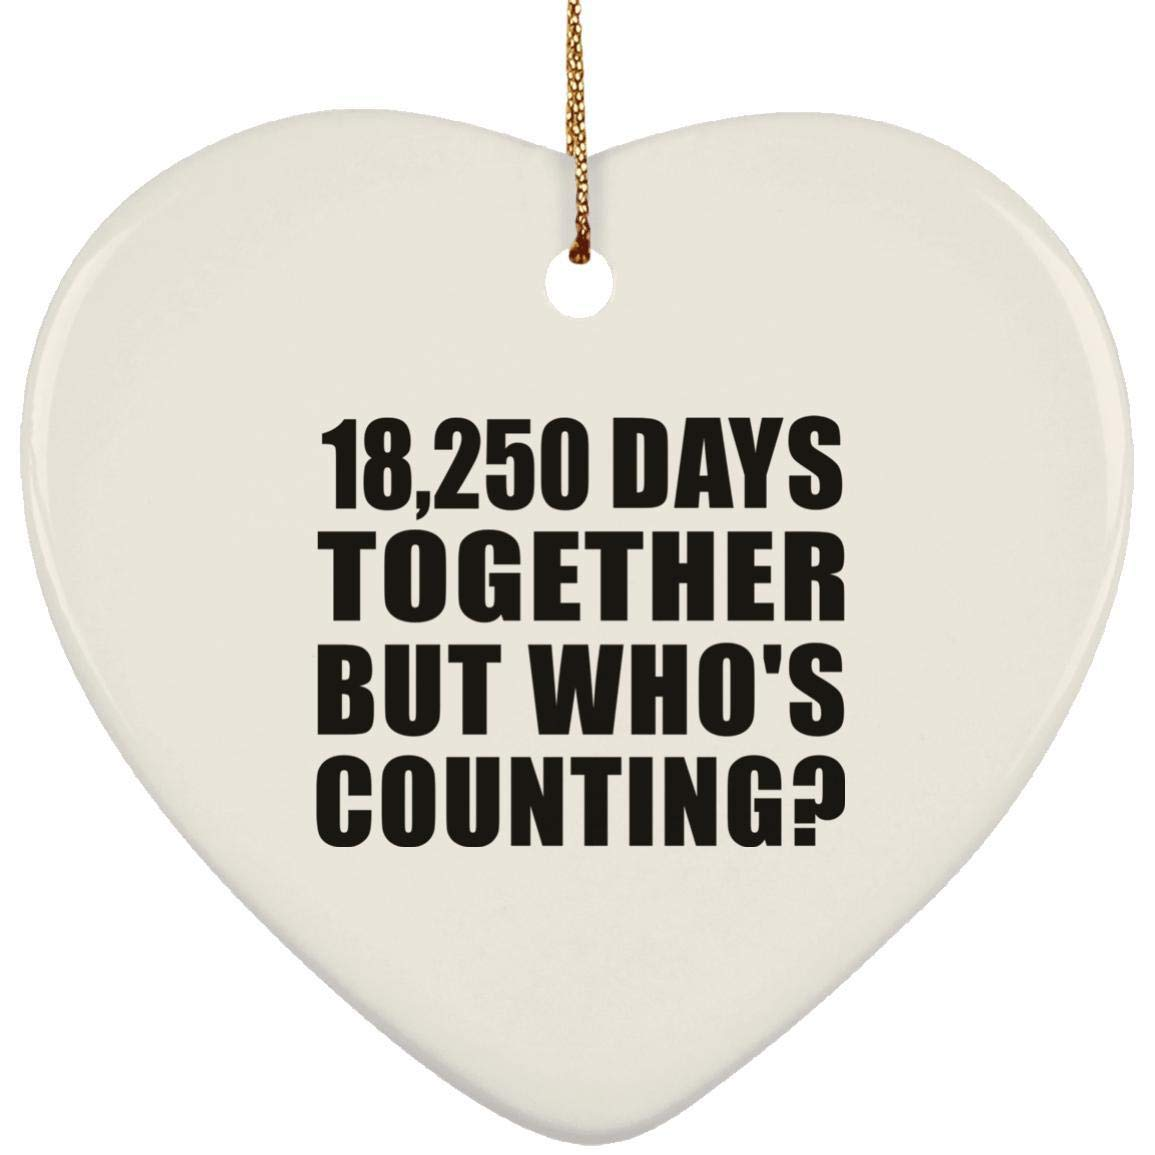 50th Anniversary 18,250 Days Together But Who's Counting - Ceramic Heart Ornament, Christmas Tree Decor, Best Gift for Wedding, Dating, Engagement Anniversary by Husband, Wife, Boyfriend, Girlfriend